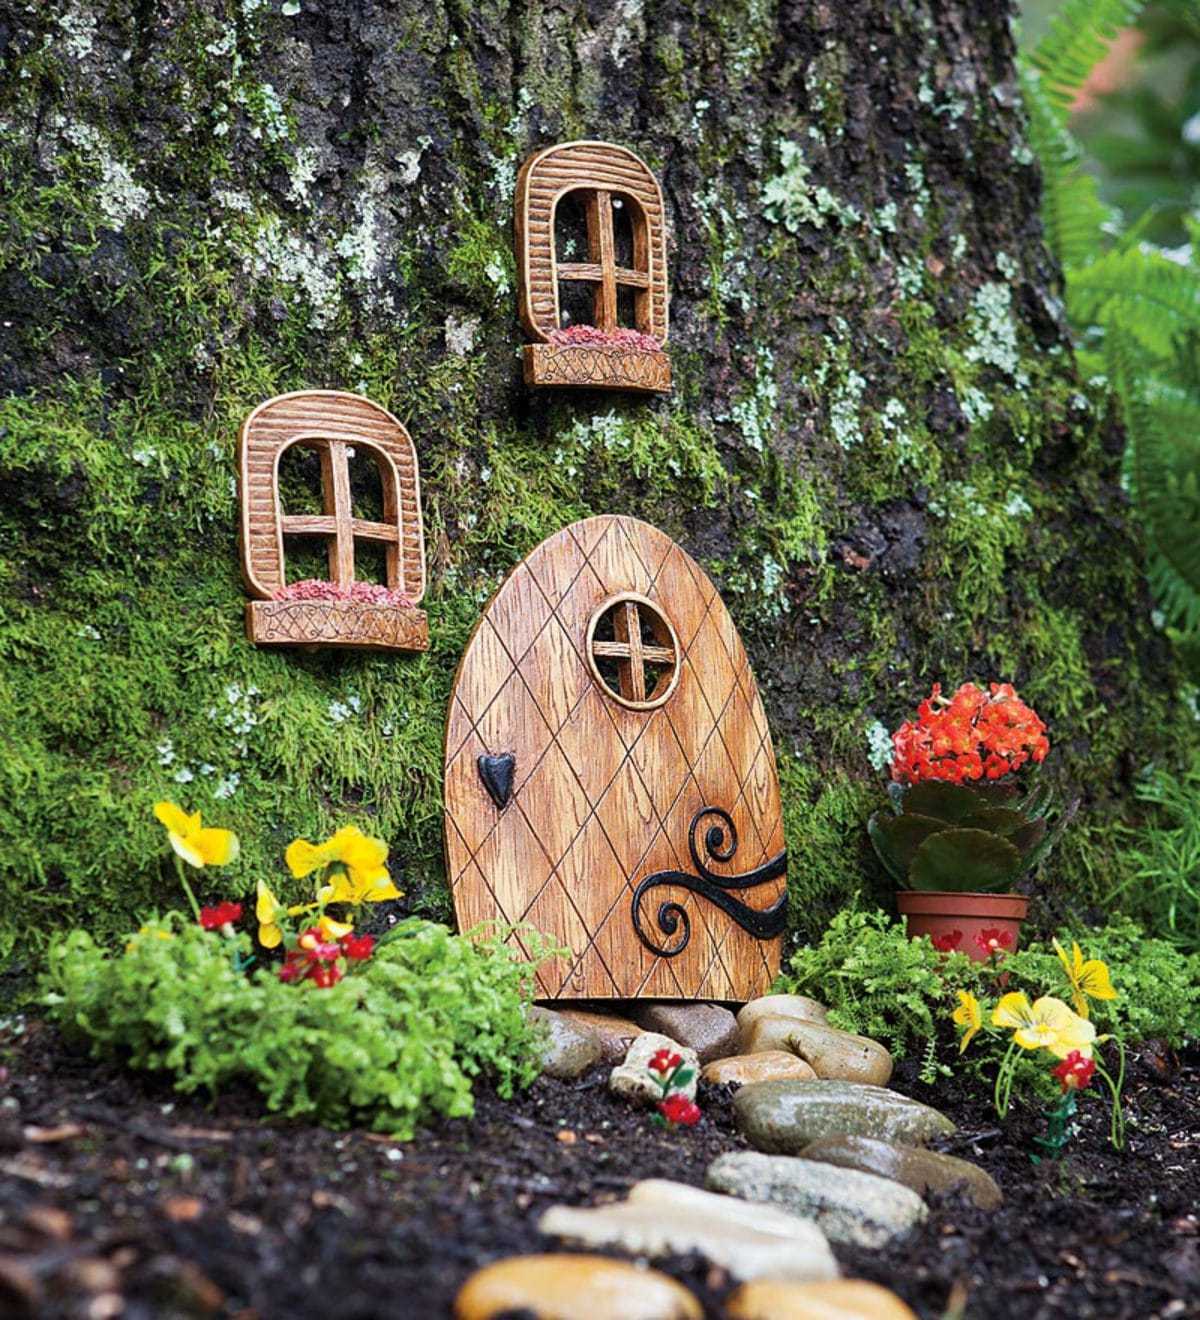 wooden fairy doors and windows fixed to trees